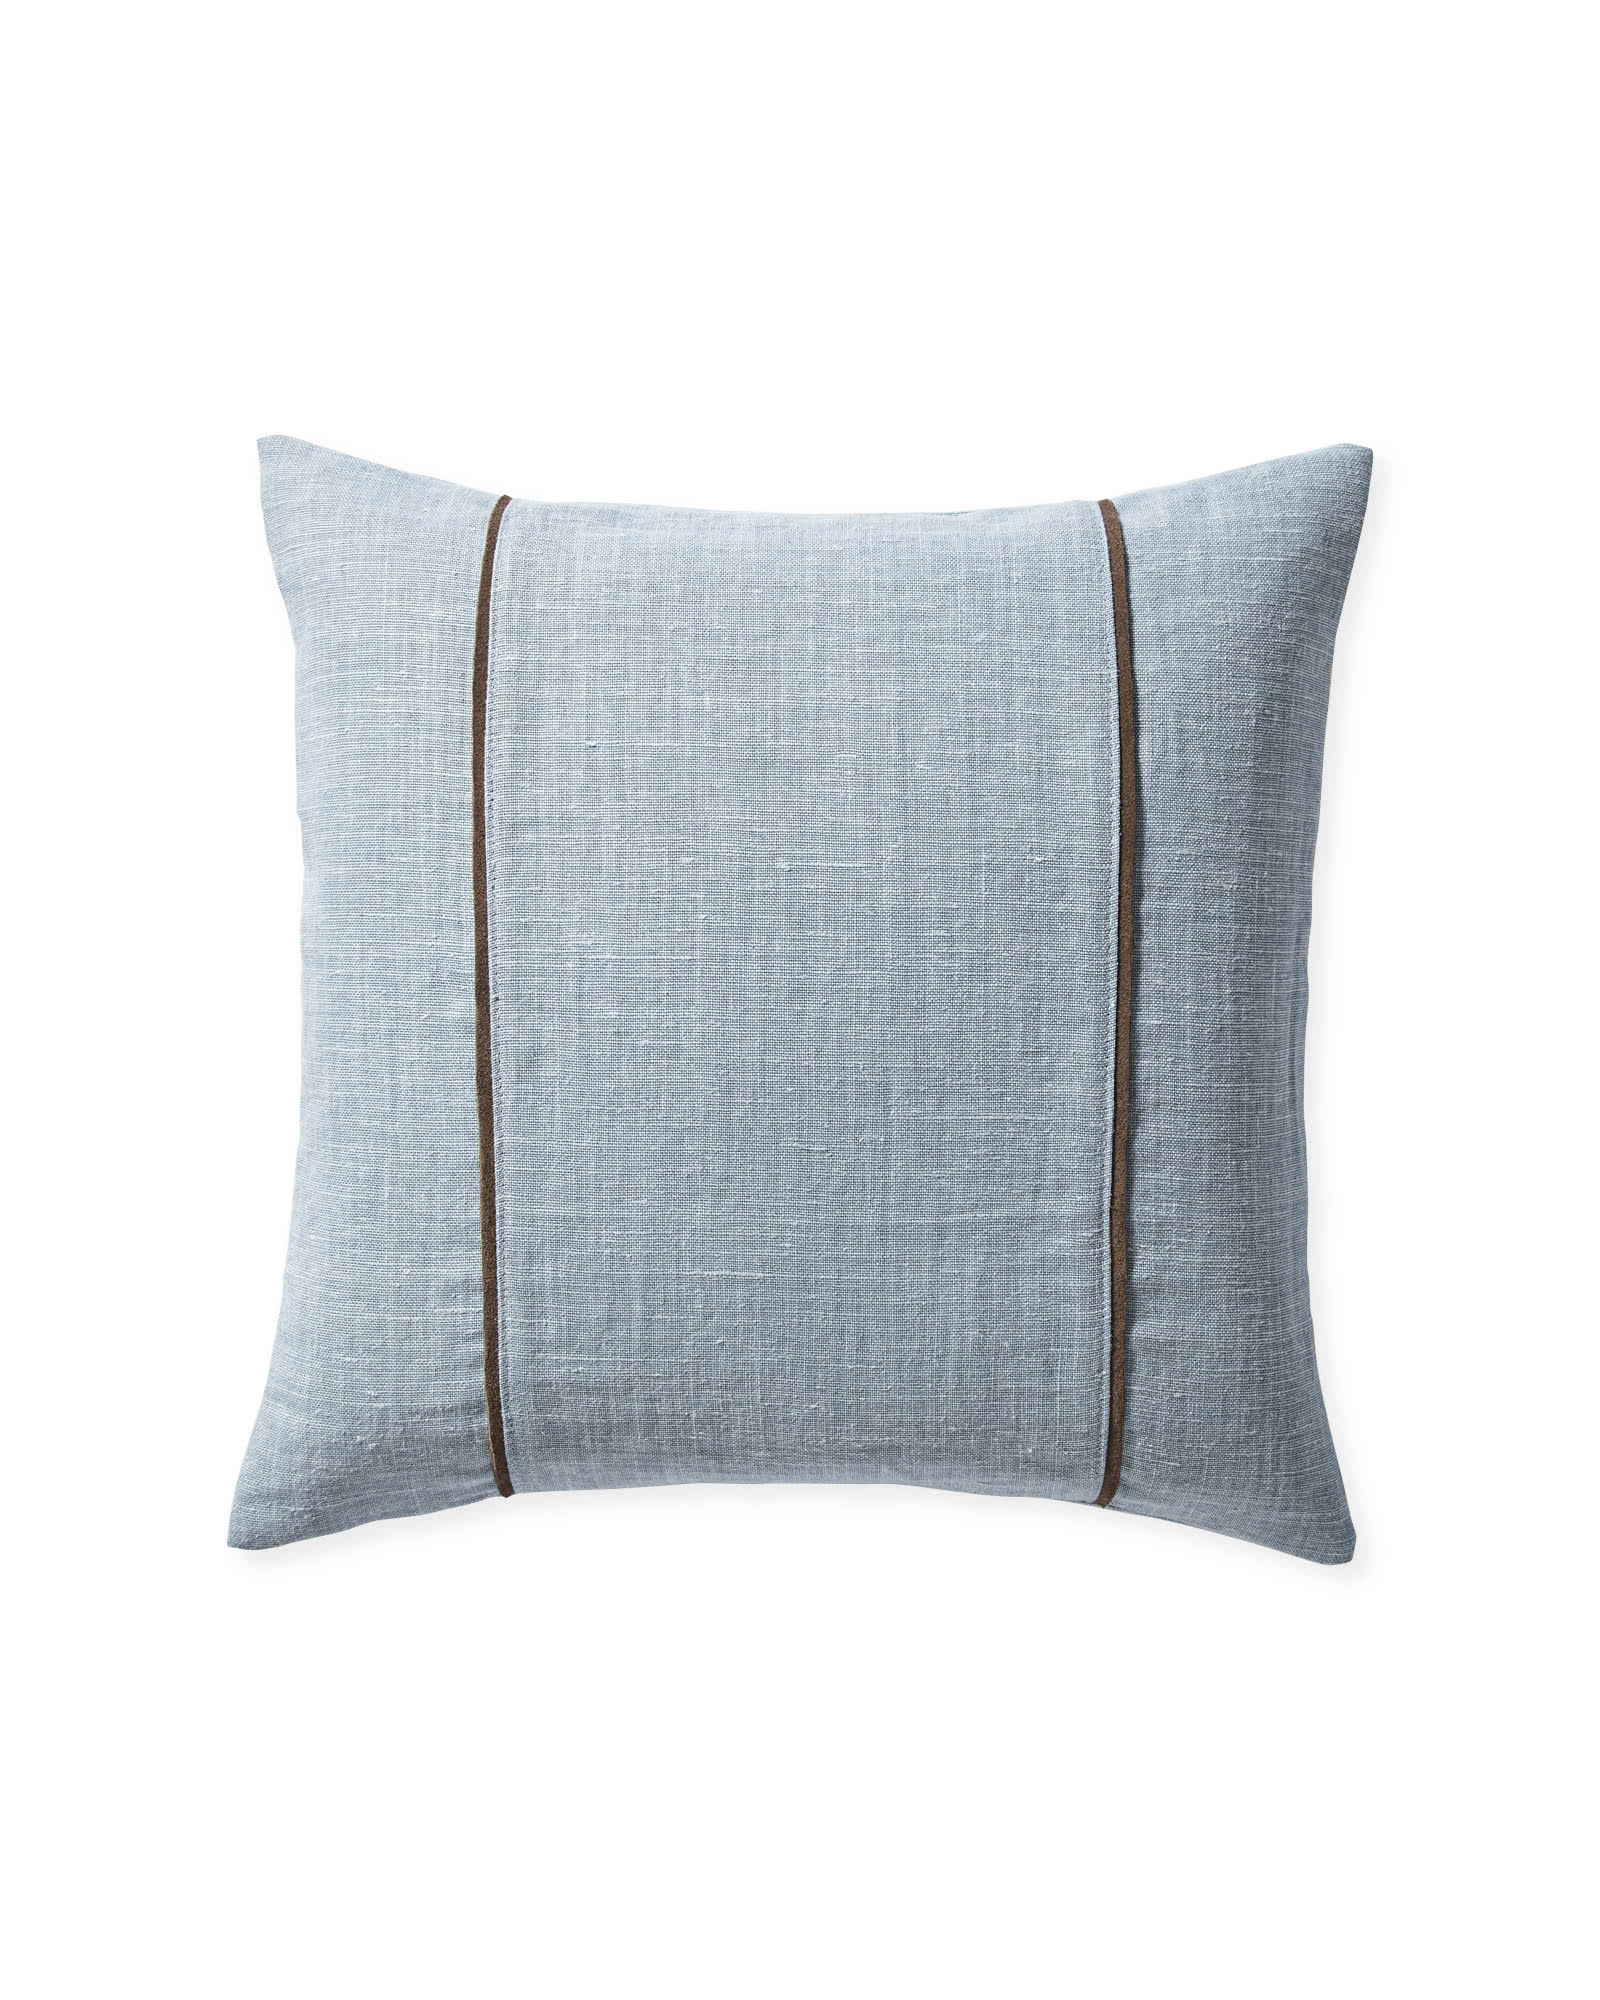 Kentfield Pillow Cover, Coastal Blue